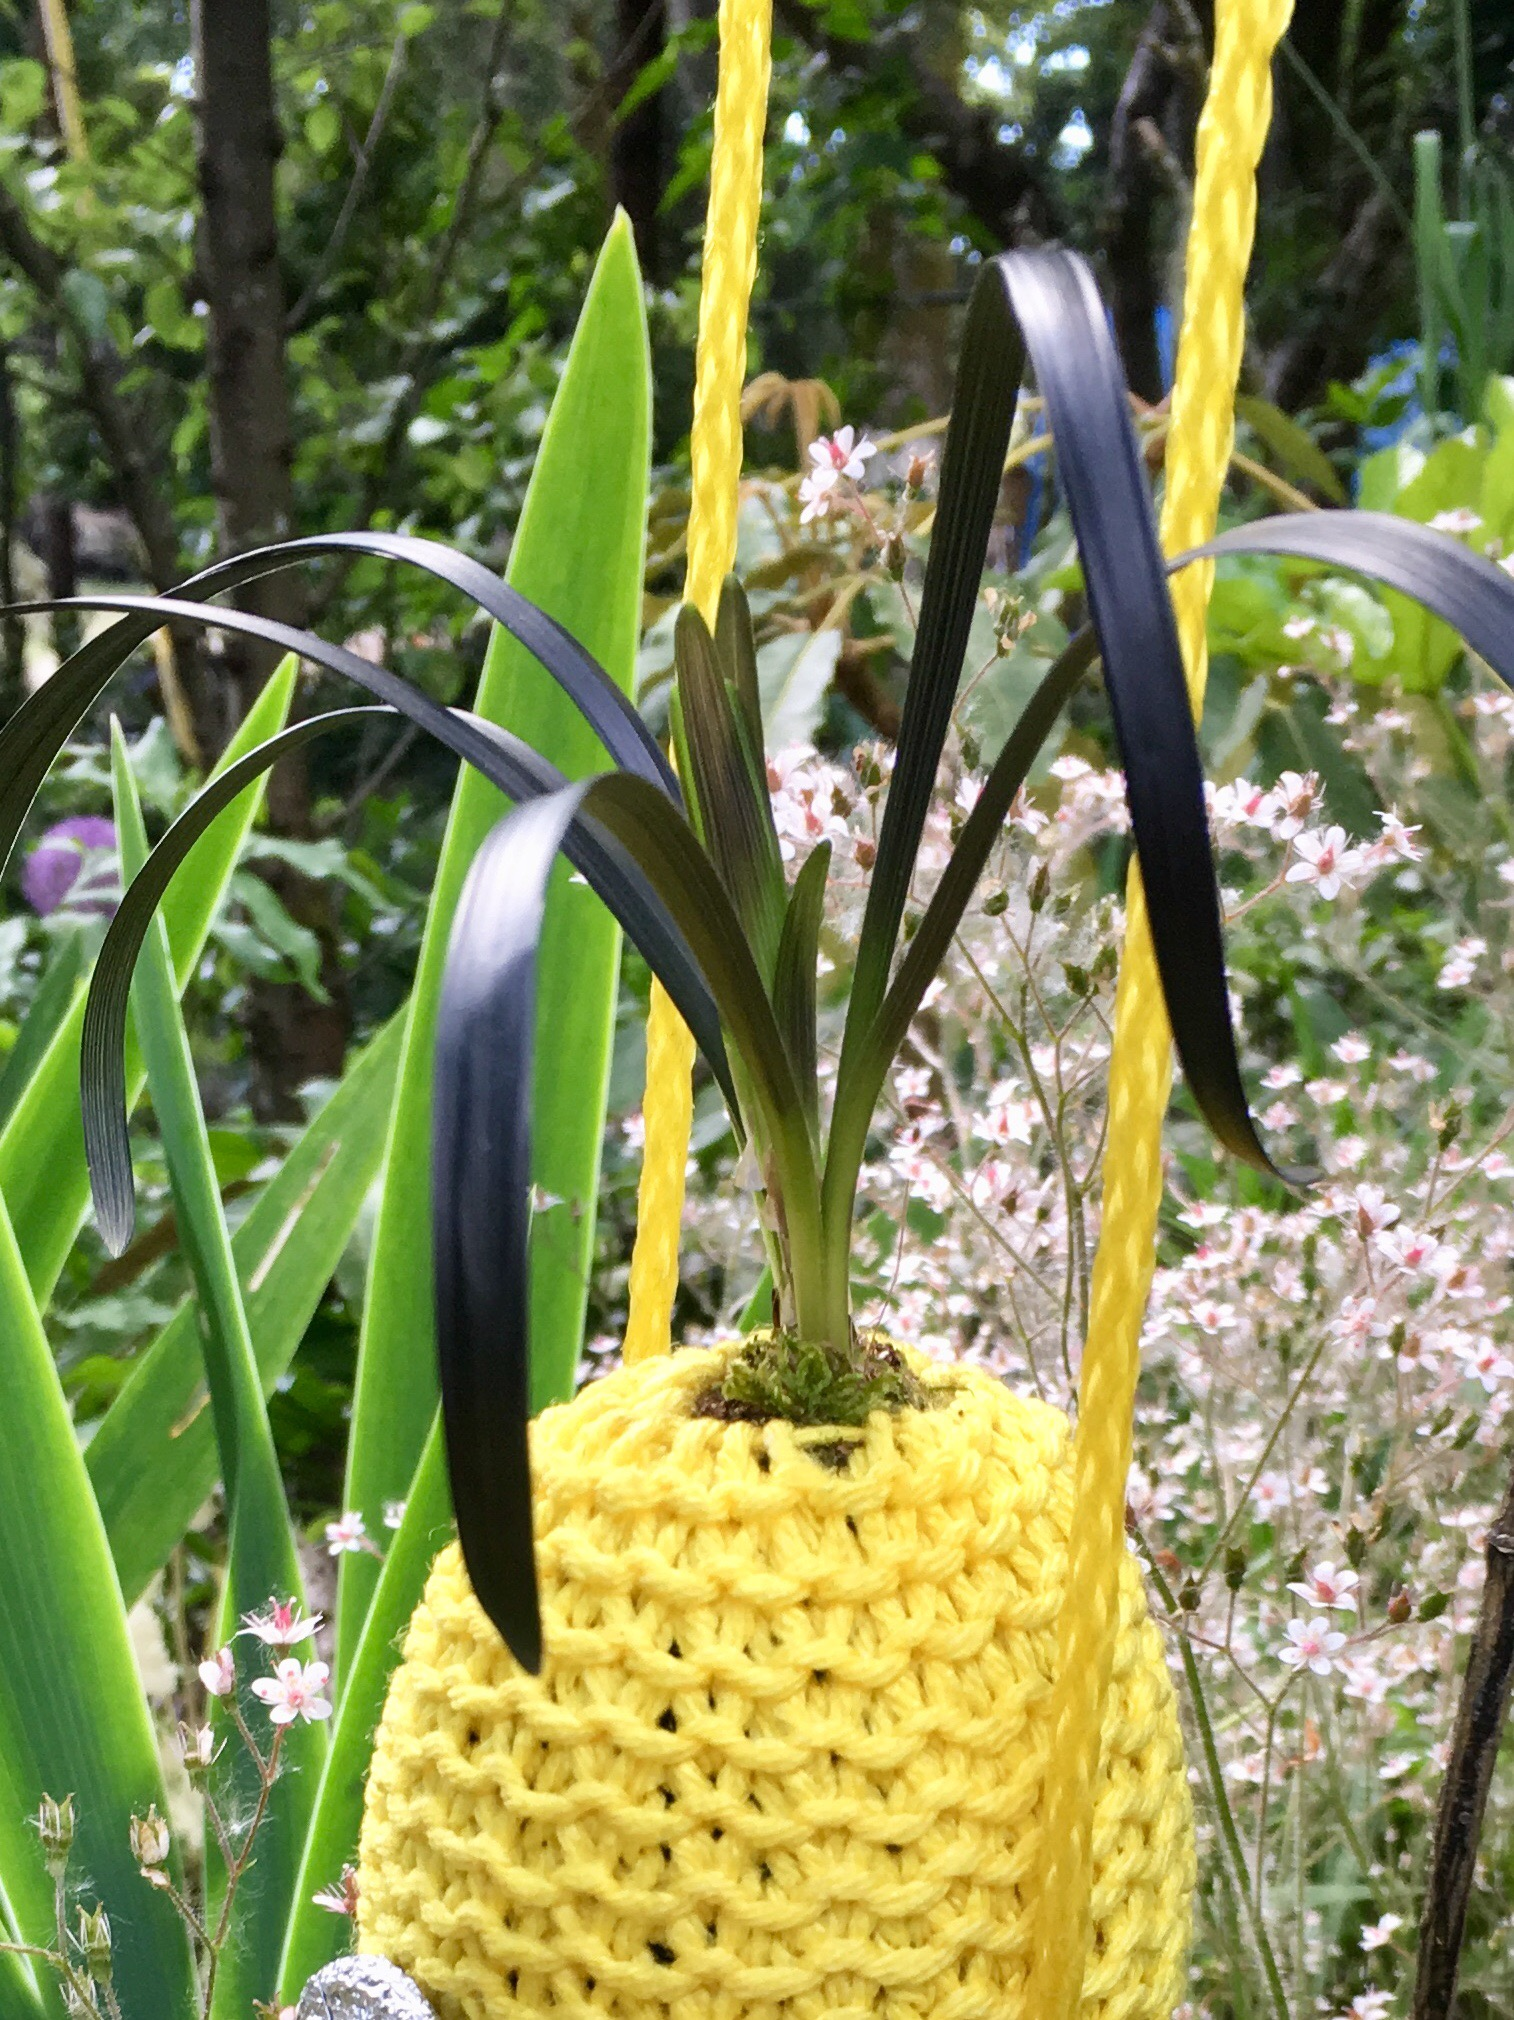 Picture of Hanging Minion Planter Bag With Growing Hair.